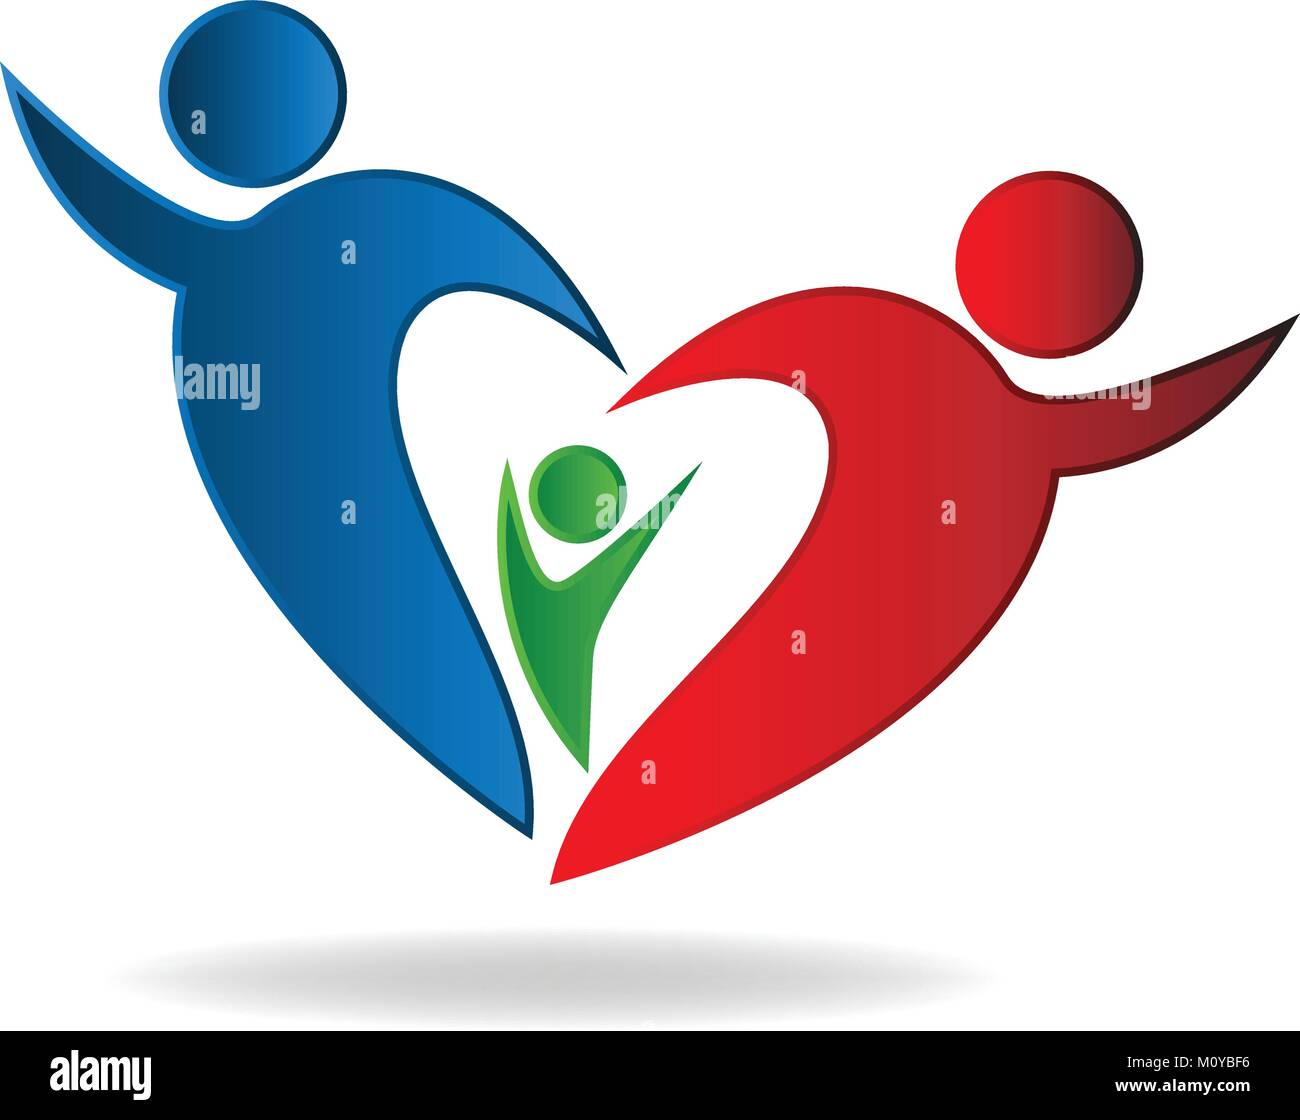 Family heart logo vector - Stock Vector